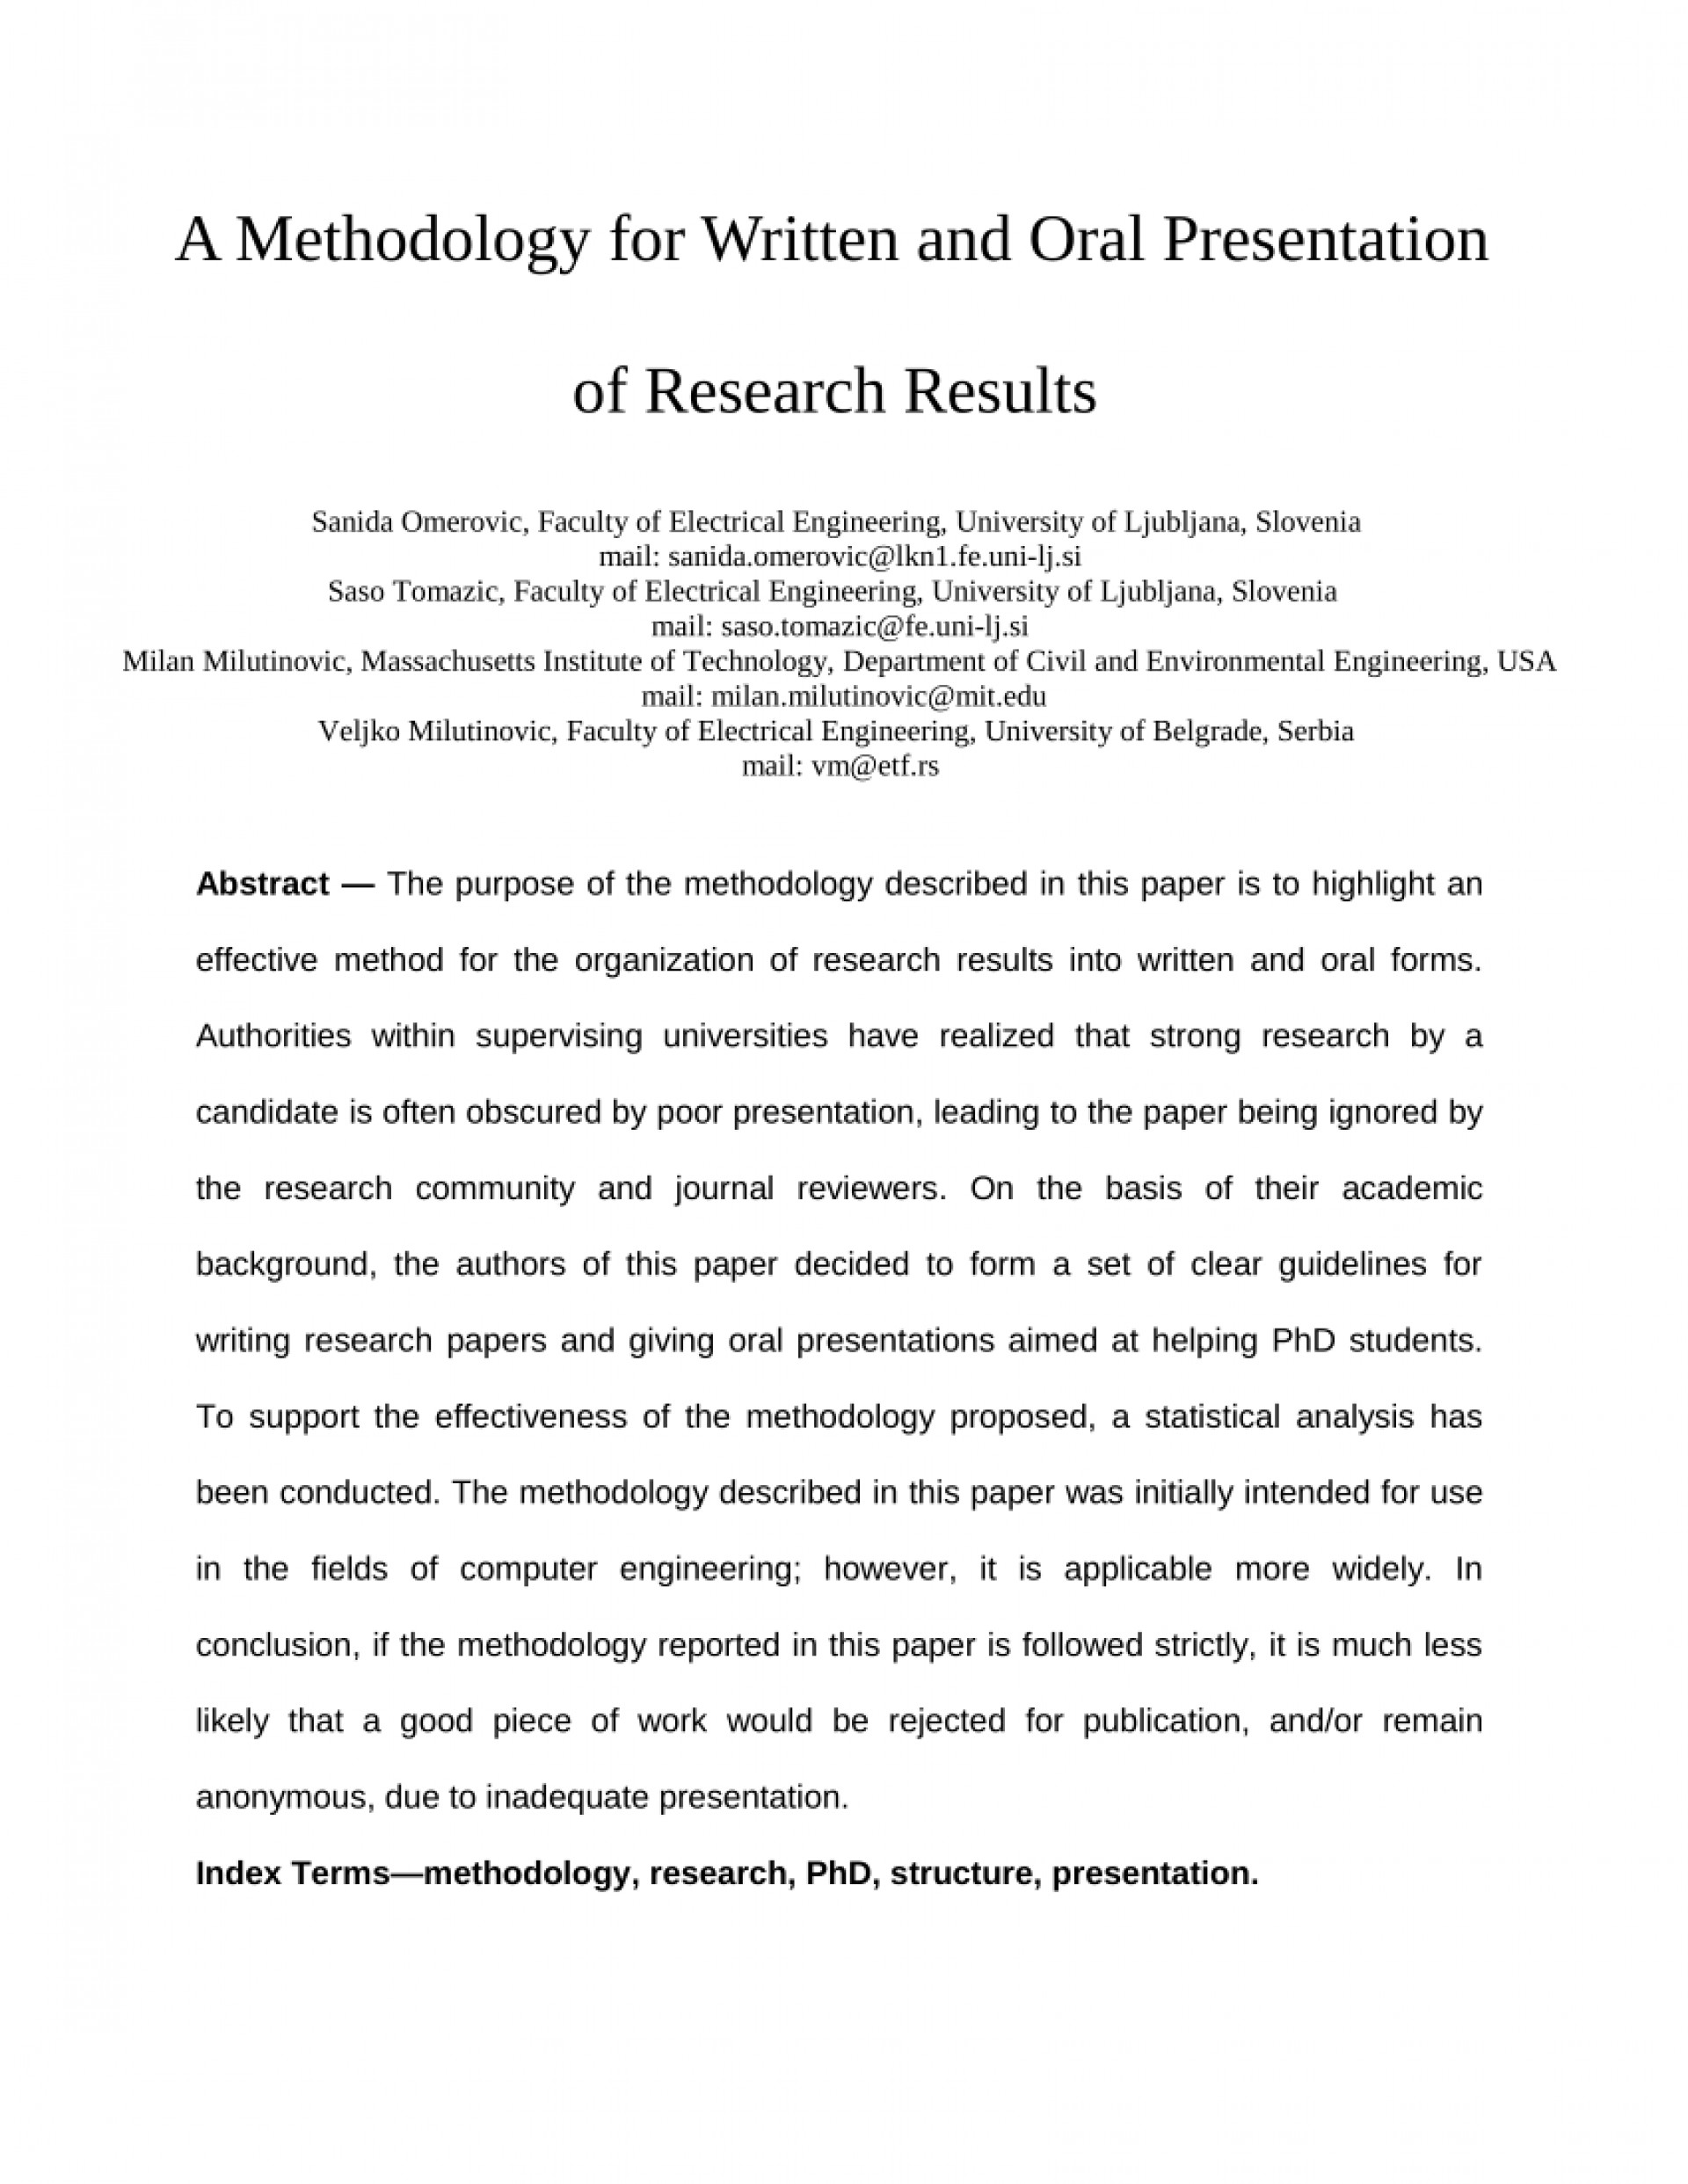 003 Method Used In Research Paper Shocking Materials And Methods Example Procedures Survey 1920